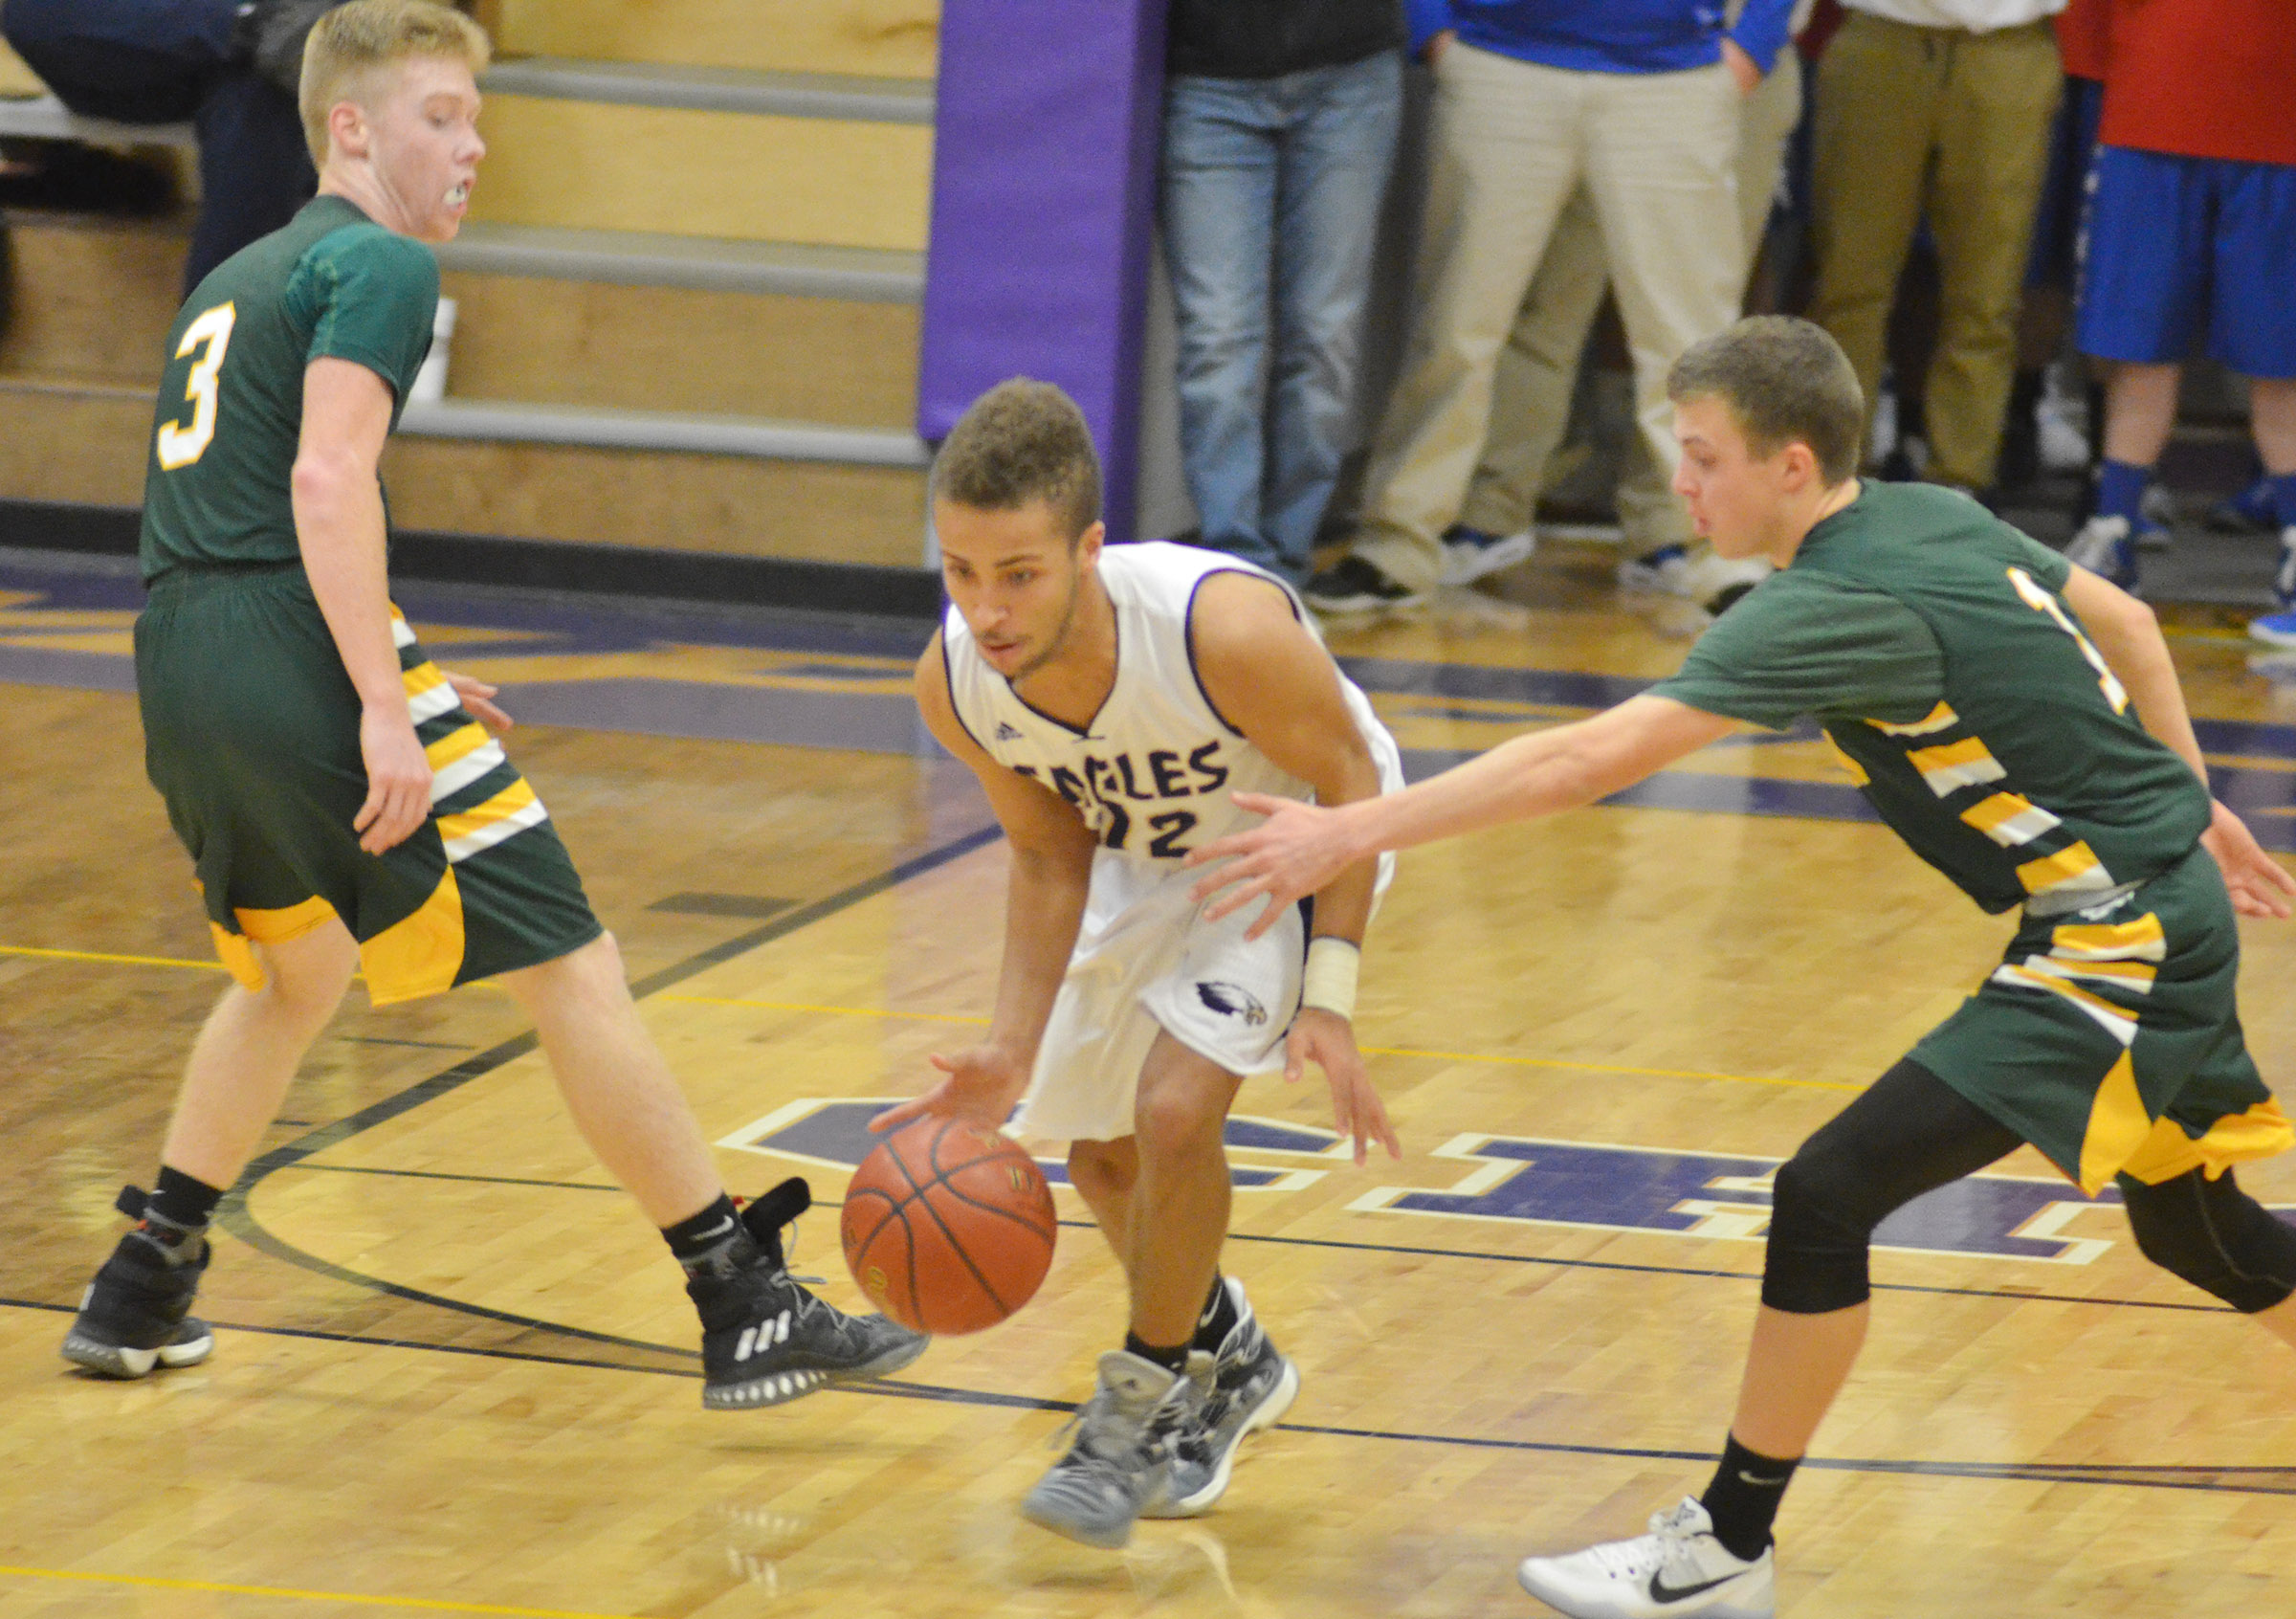 CHS junior Ethan Lay dribbles to the basket.